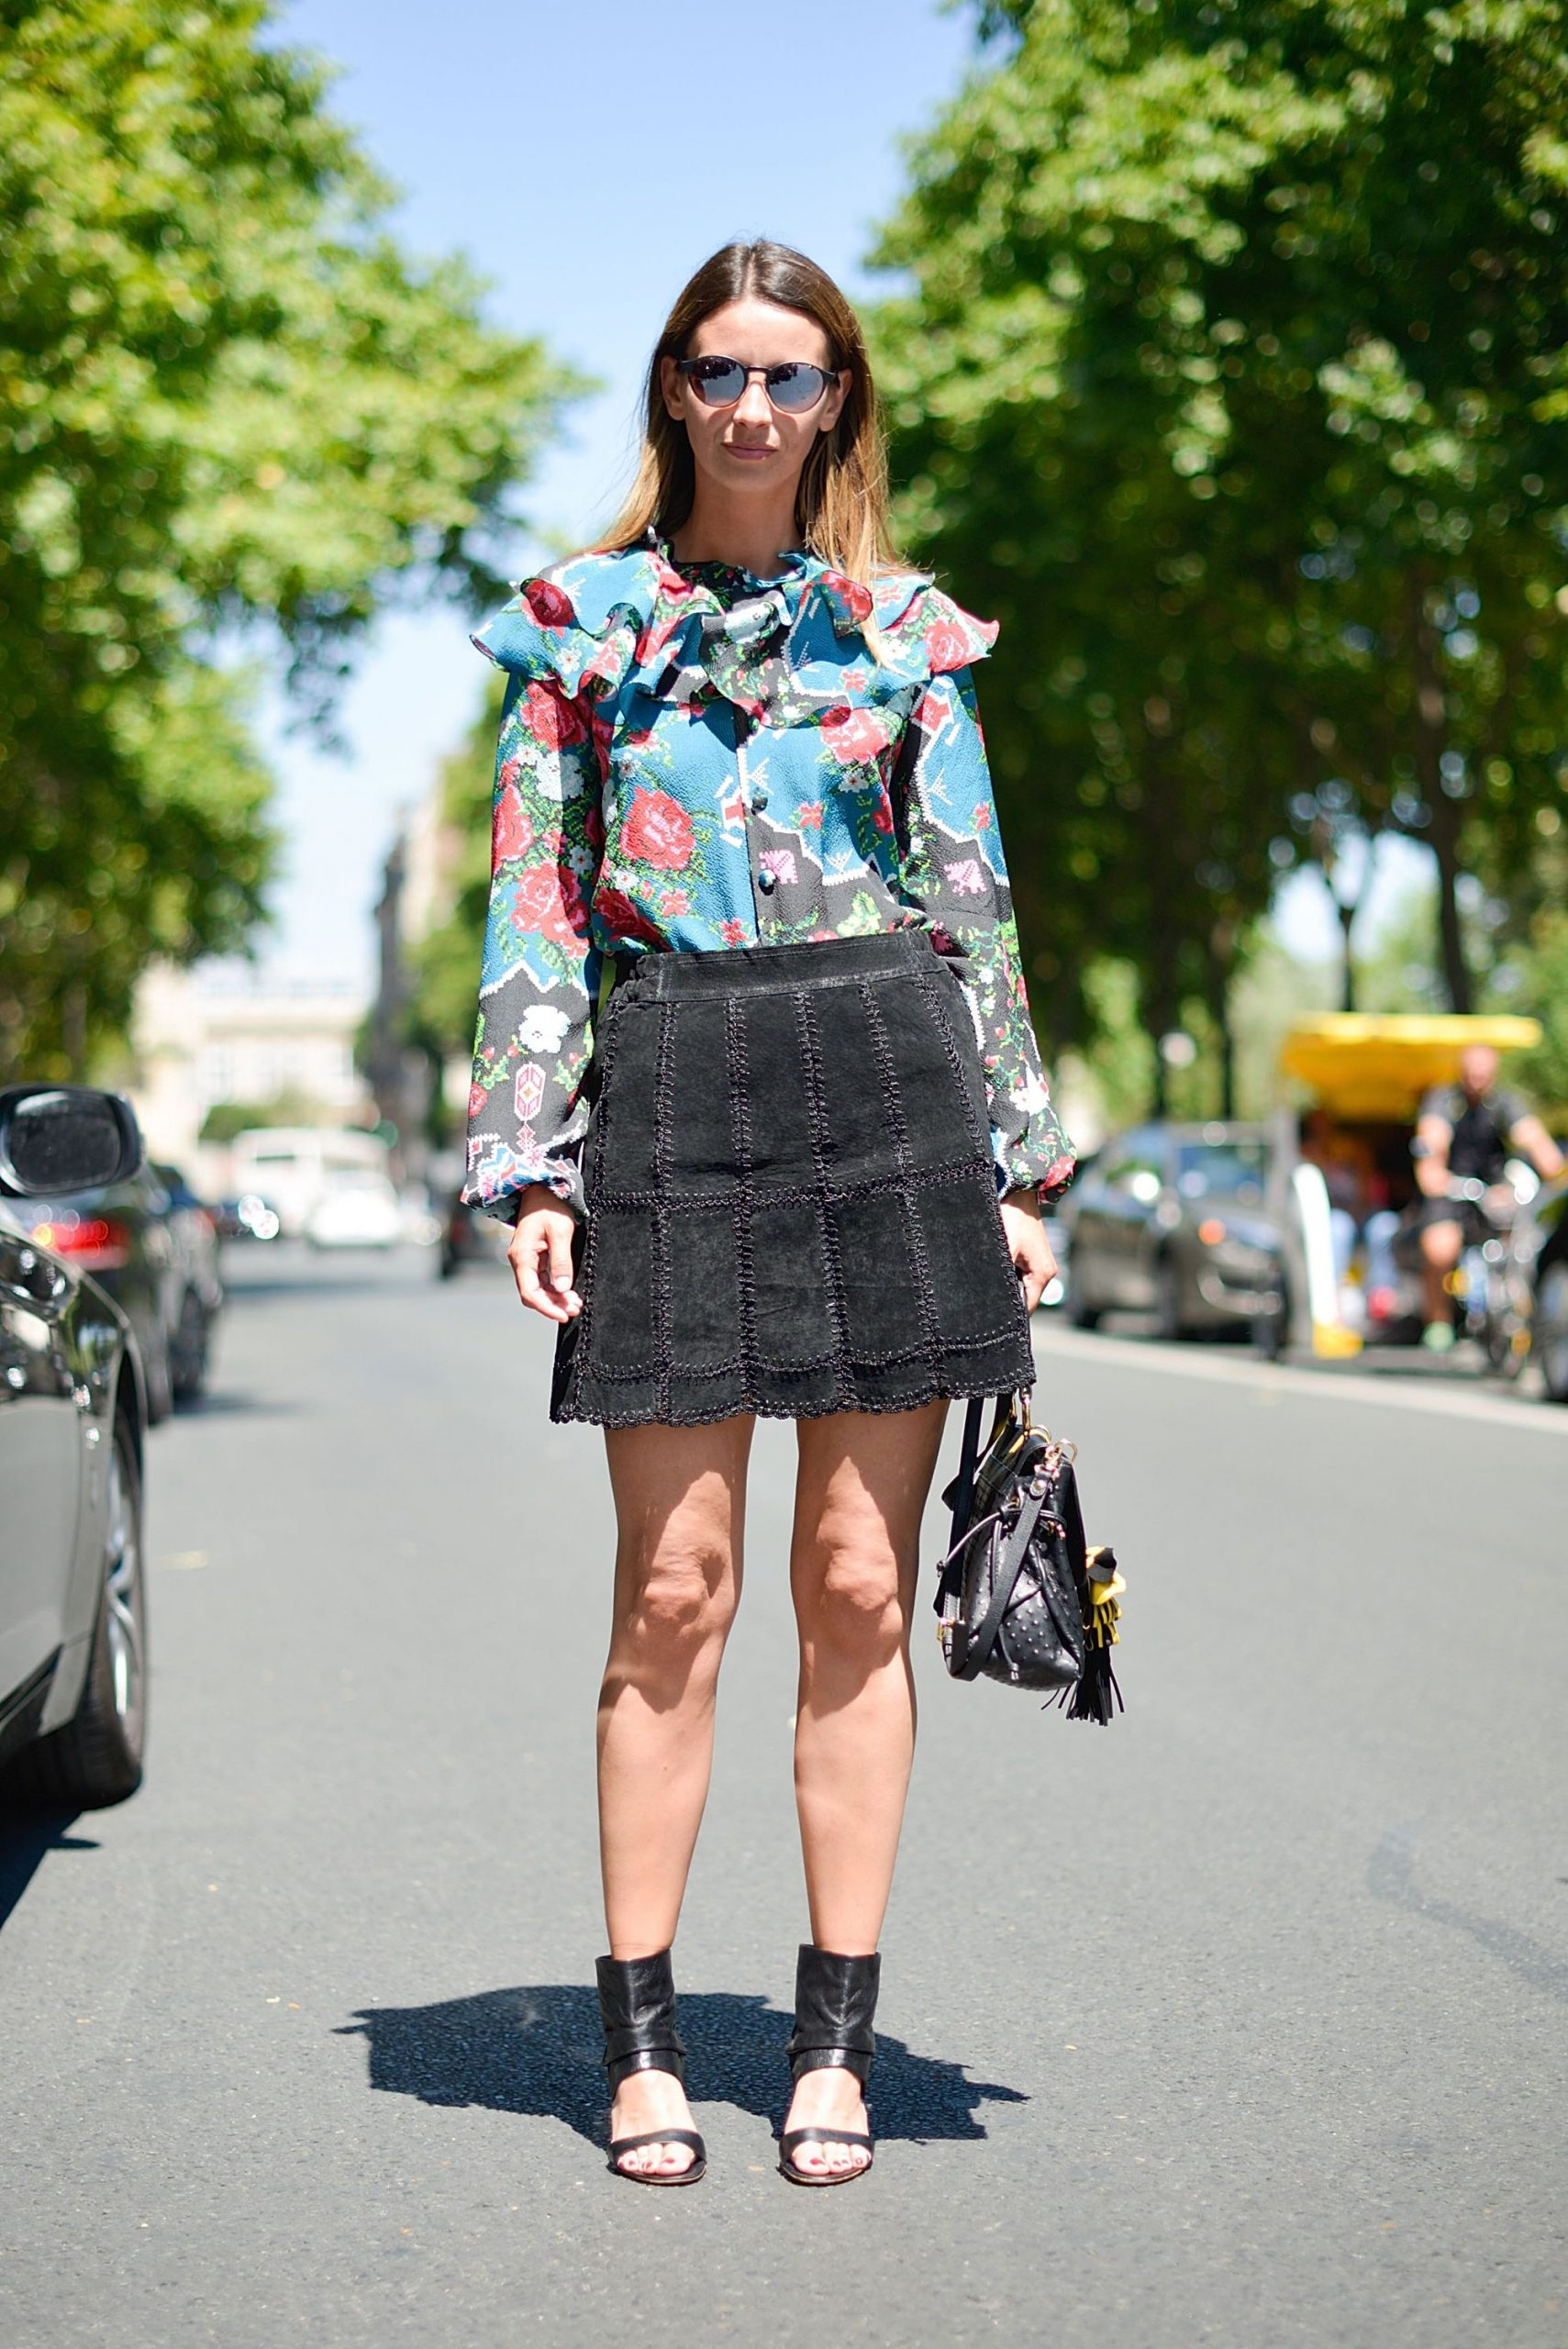 How Women Should Mix Prints and Patterns